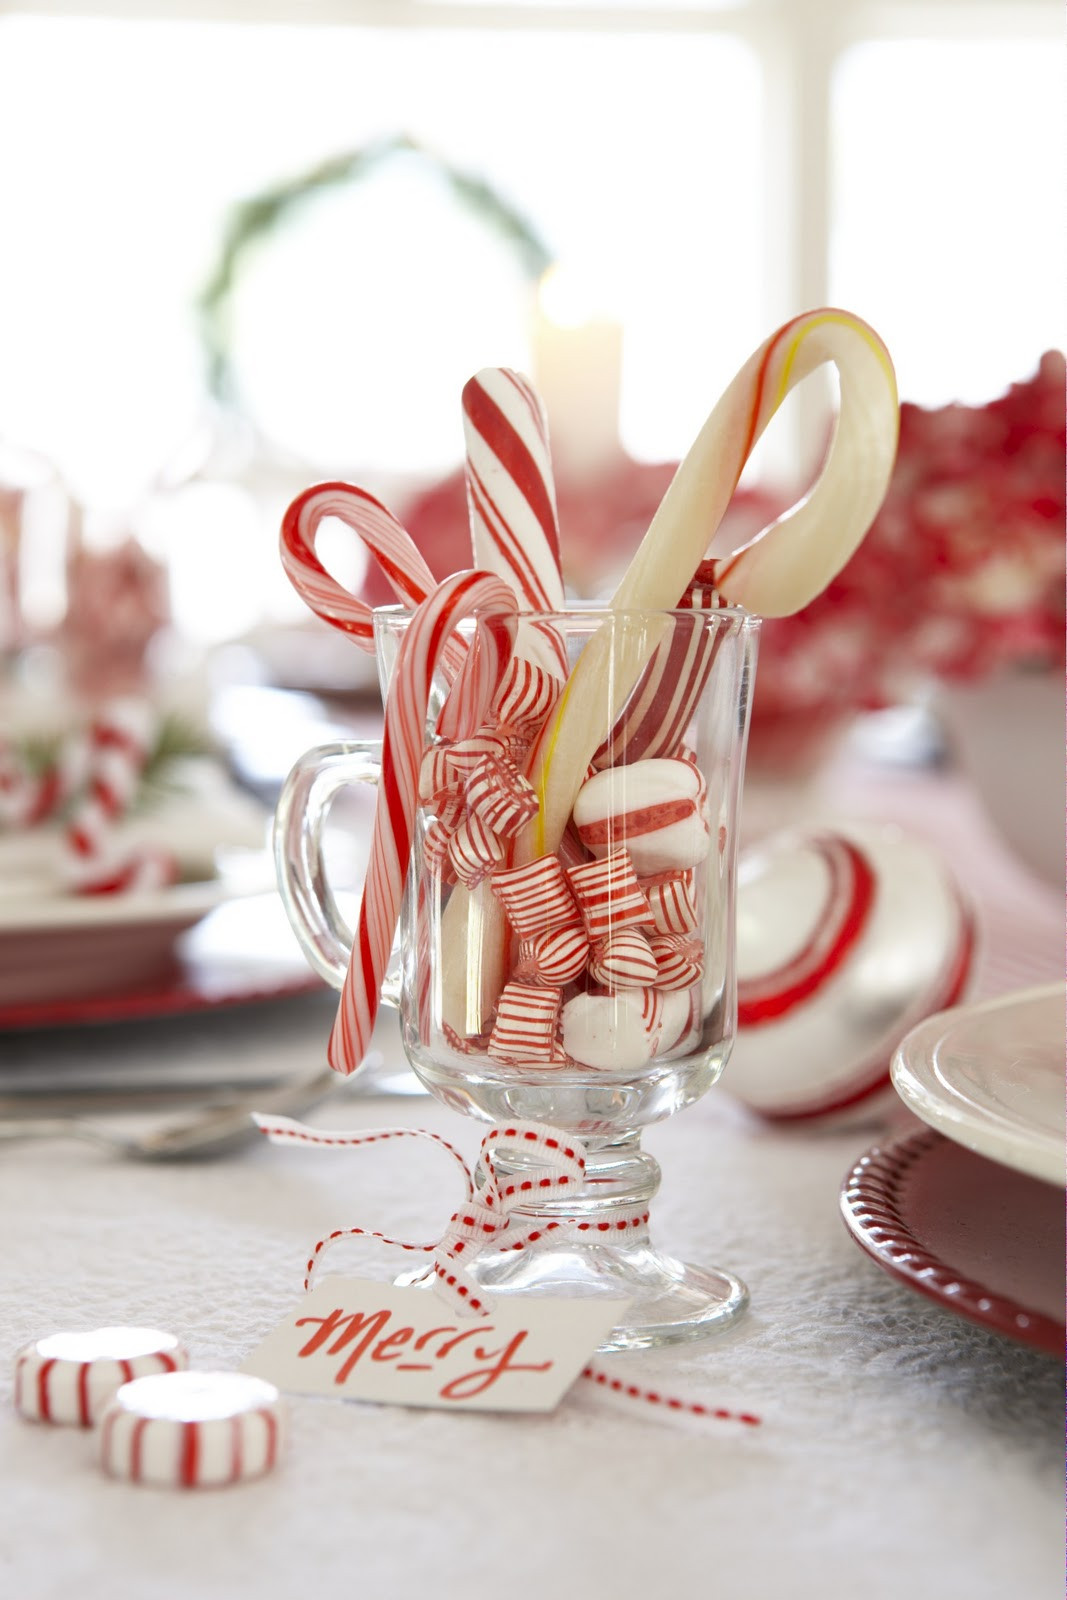 Christmas Candy Favors  Karin Lidbeck Holiday Table DIY Candy Cane Style